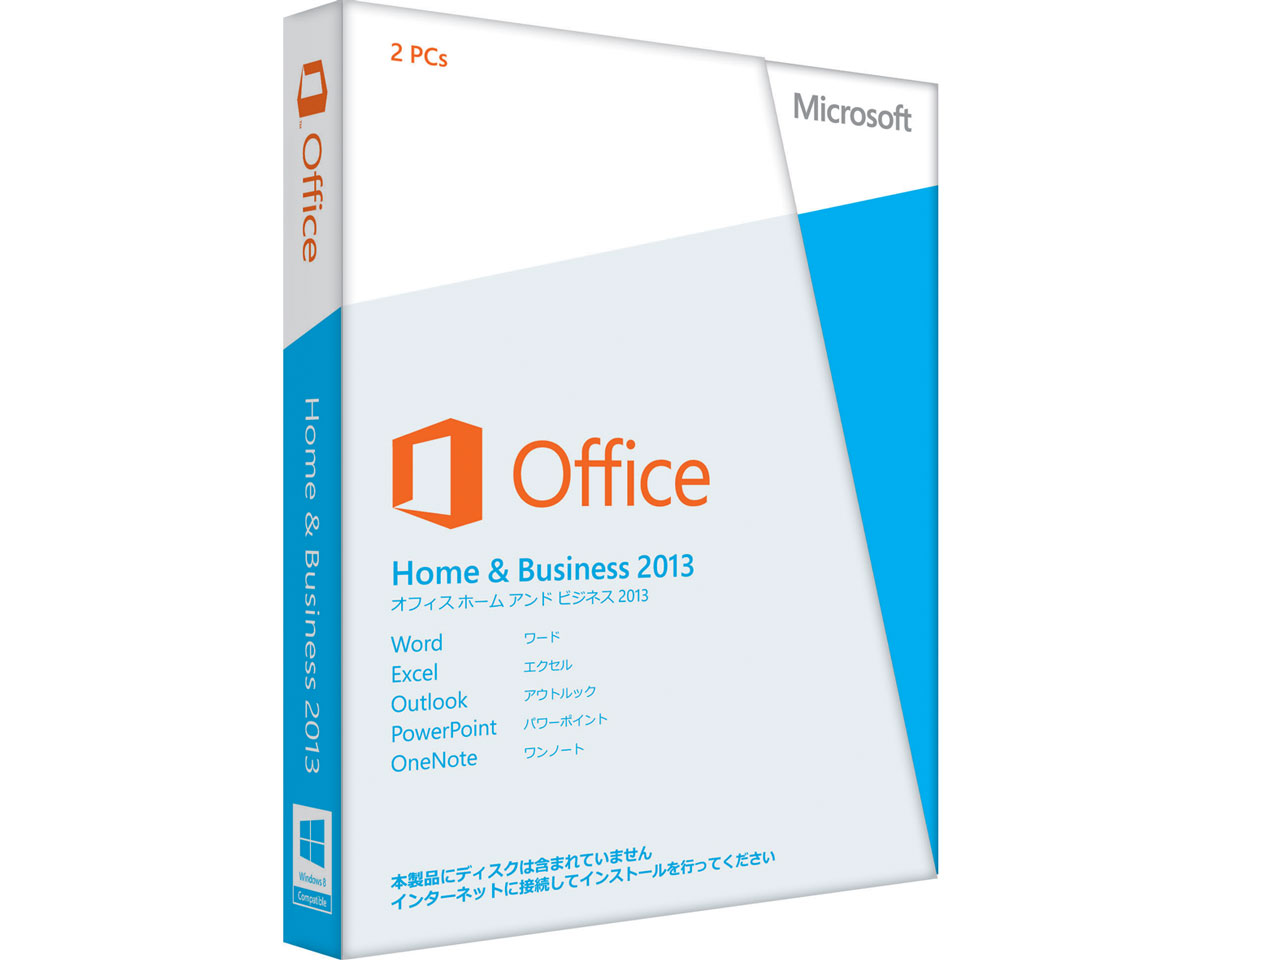 Office Home and Business 2013 の製品画像